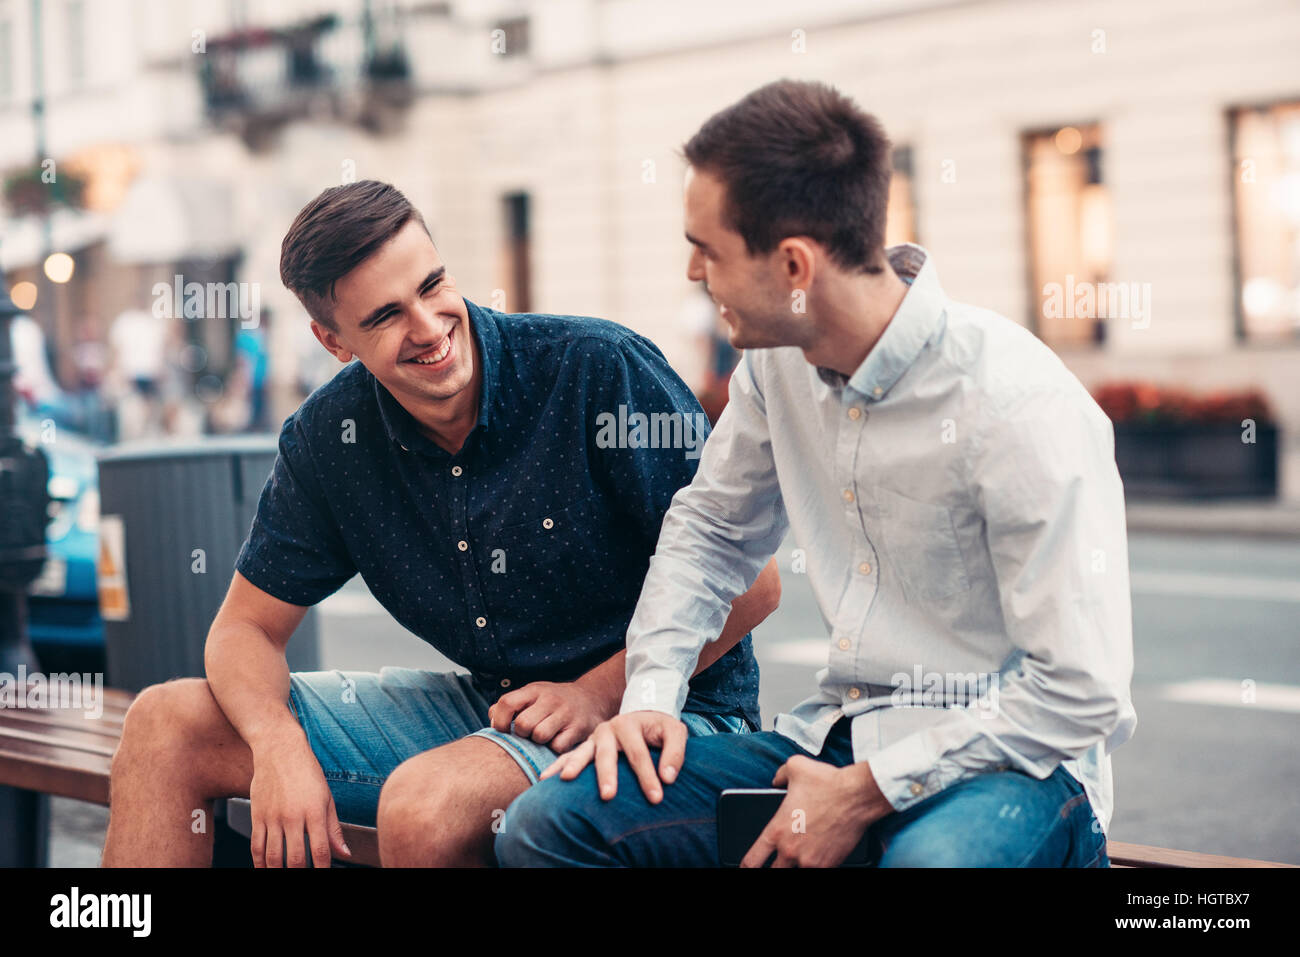 Friends talking together on a bench in the city - Stock Image